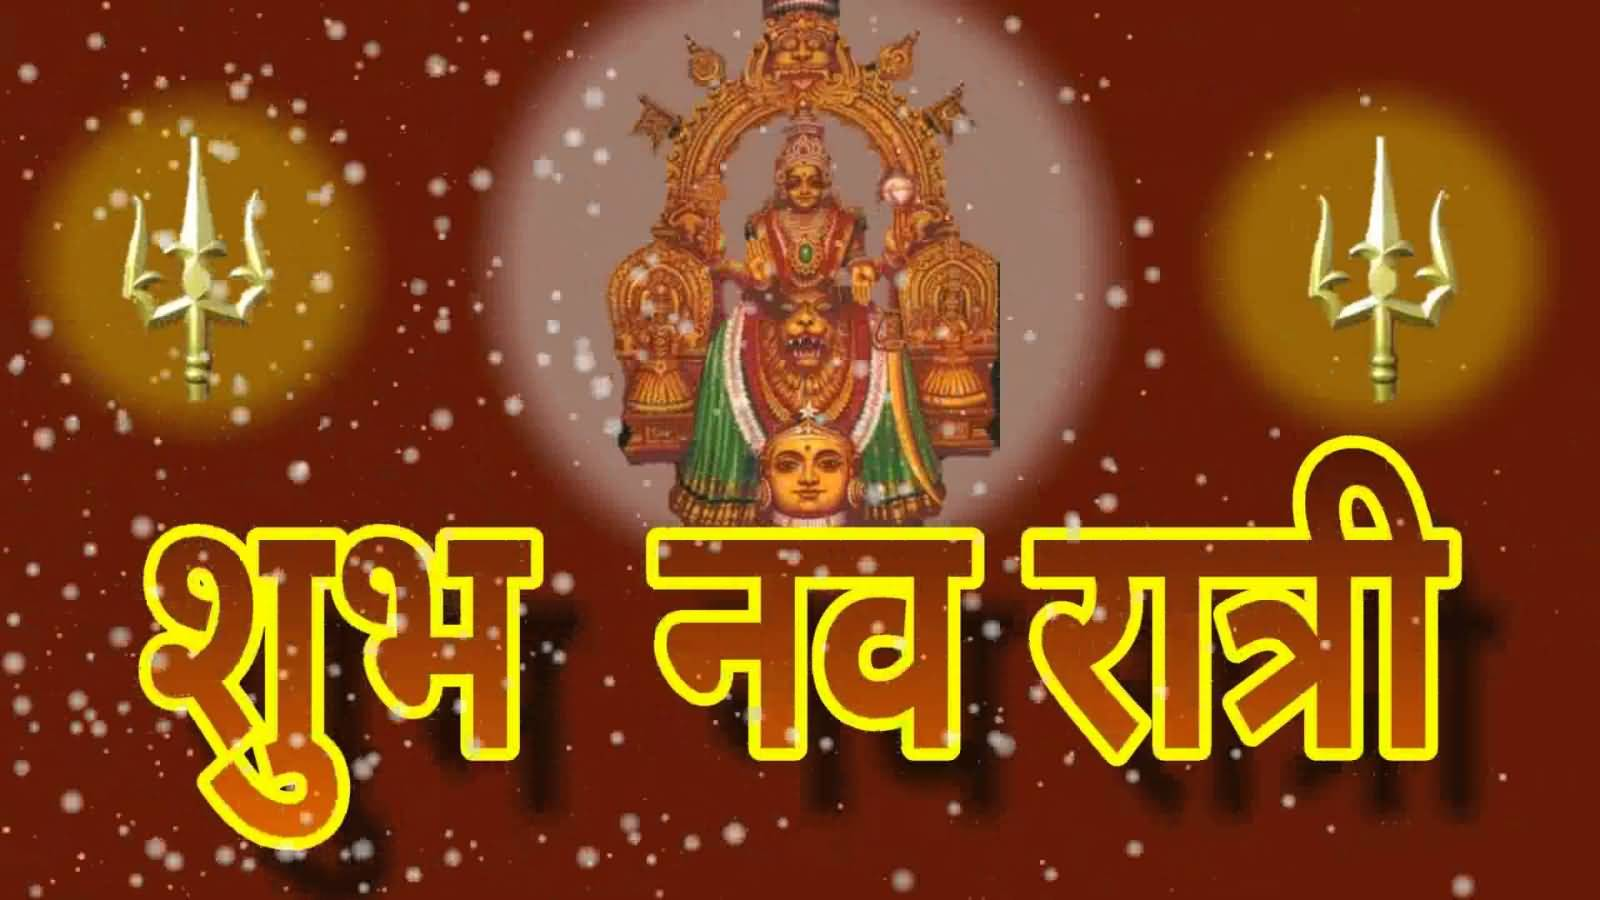 55 best pictures and images of navratri wishes shubh navratri wishes m4hsunfo